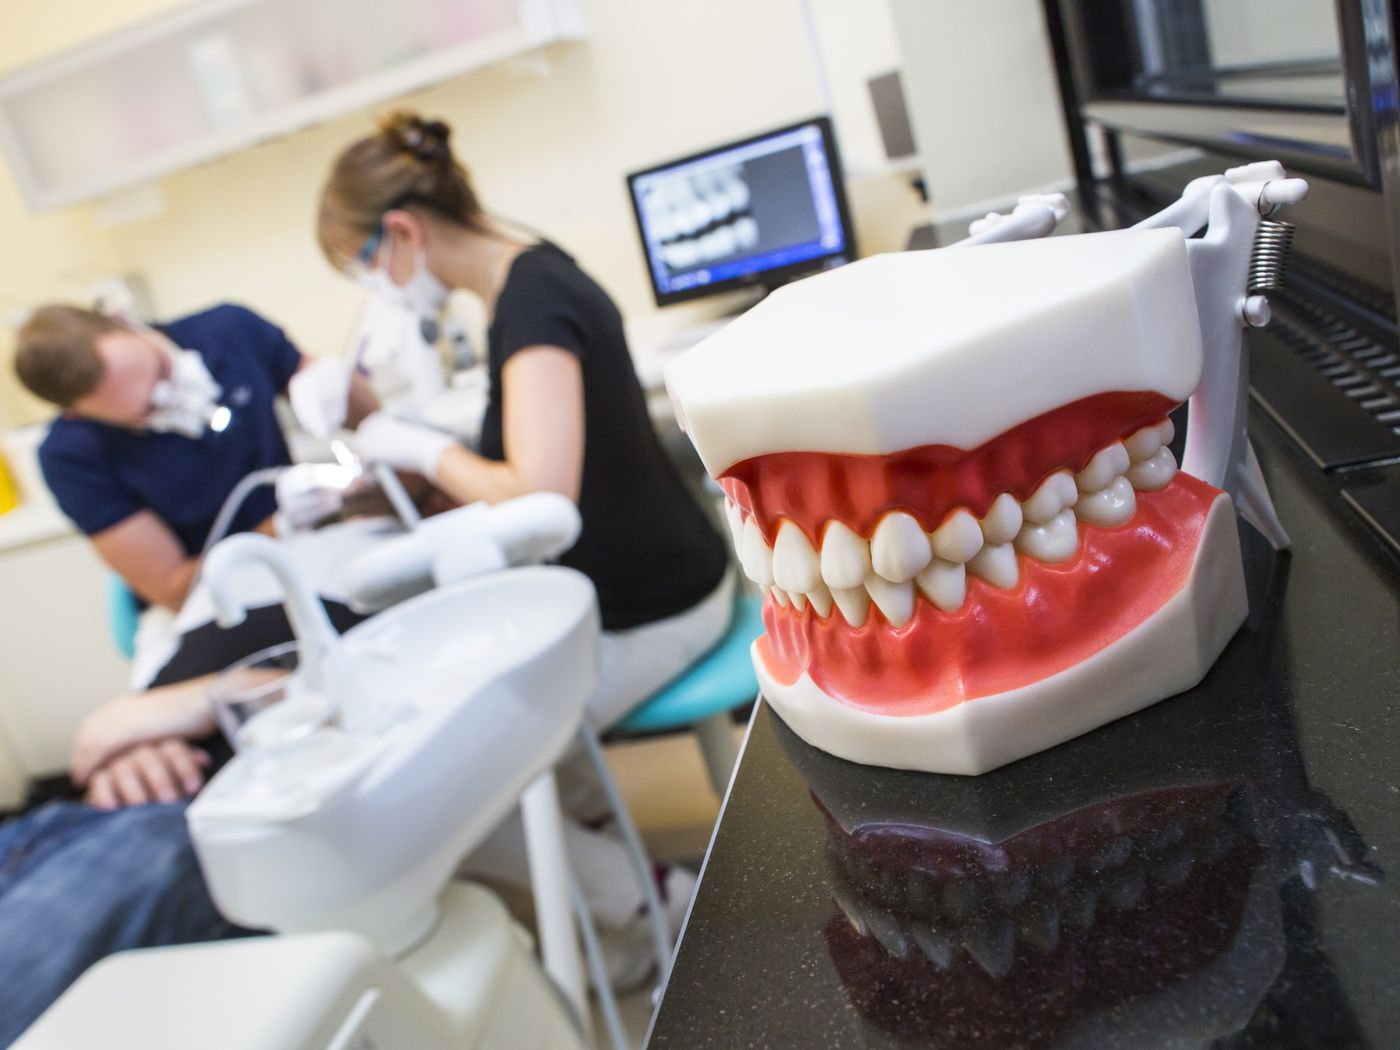 Tips On Preventing Tooth Loss and Emergency Dental Treatment